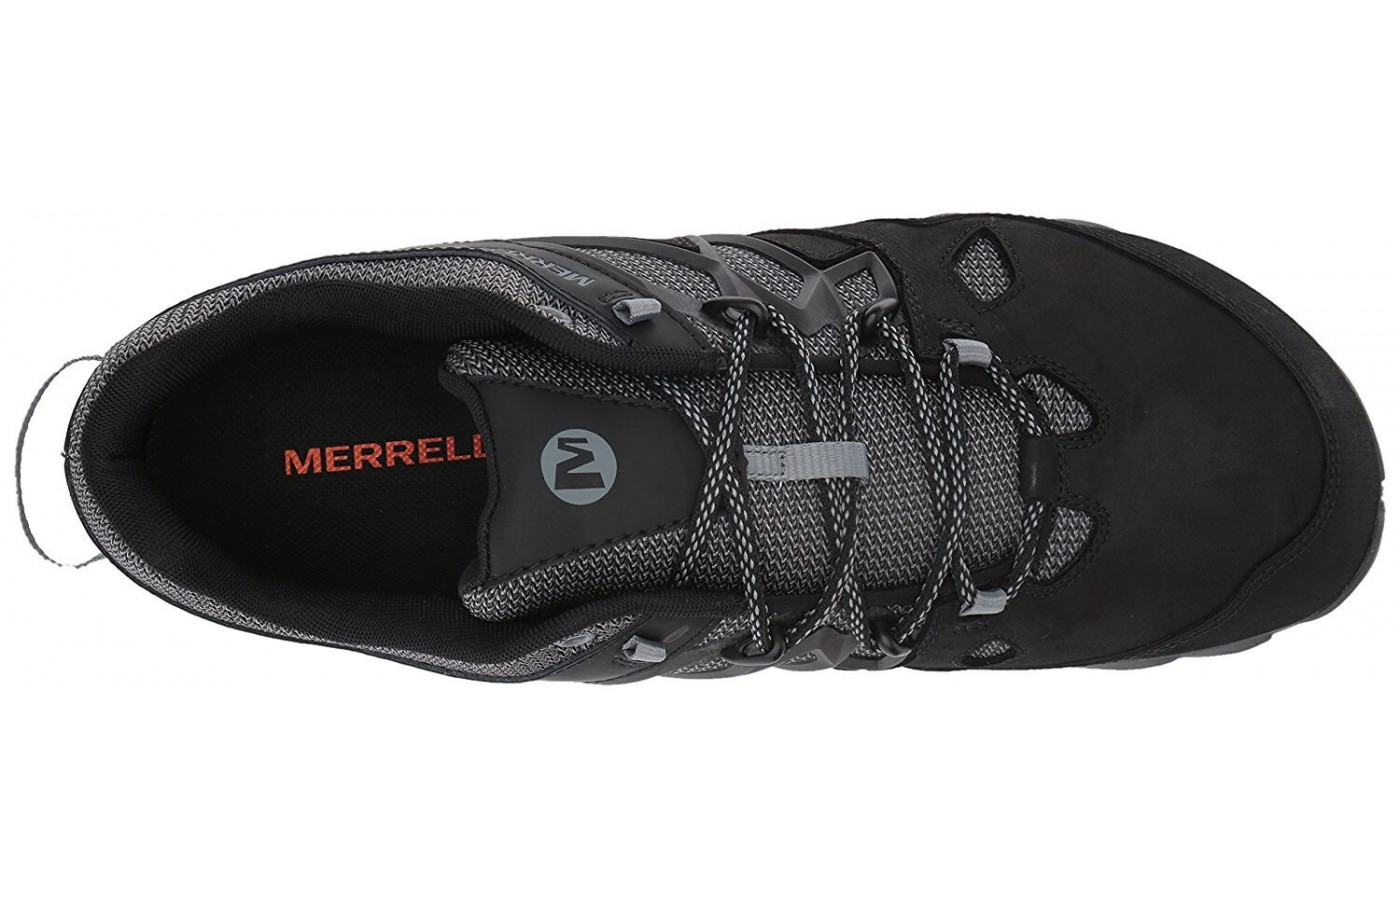 The upper half of the Merrell All Out Blaze 2.